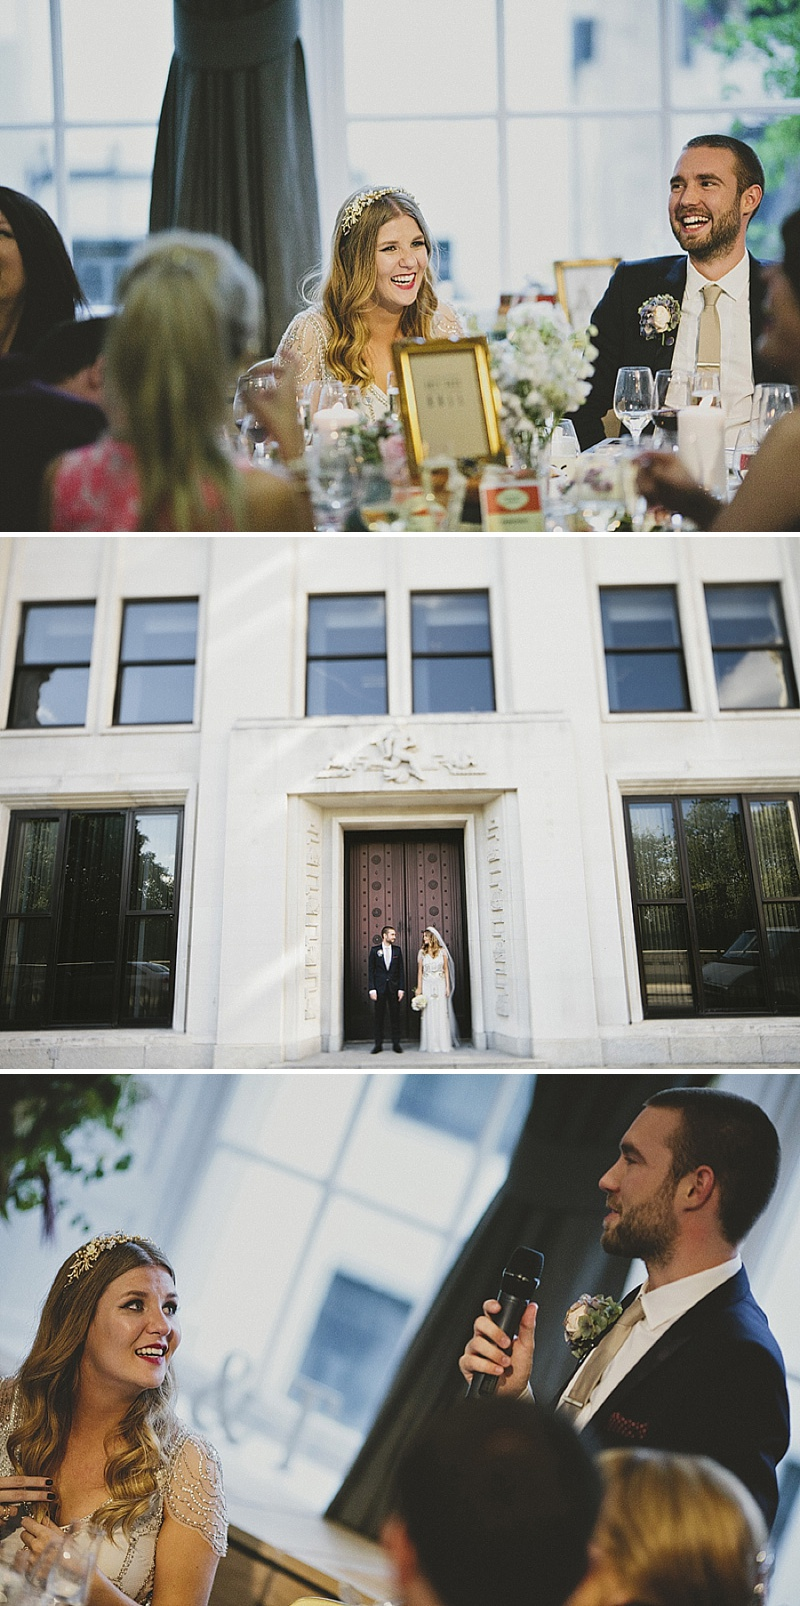 30s Inspired London Wedding At The Royal Society Of Arts With Bride In Eden By Jenny Packham And Groom In Navy Suit From The Kooples Images By John Day Photography With The Rolling Stoned Tribute Band_0013